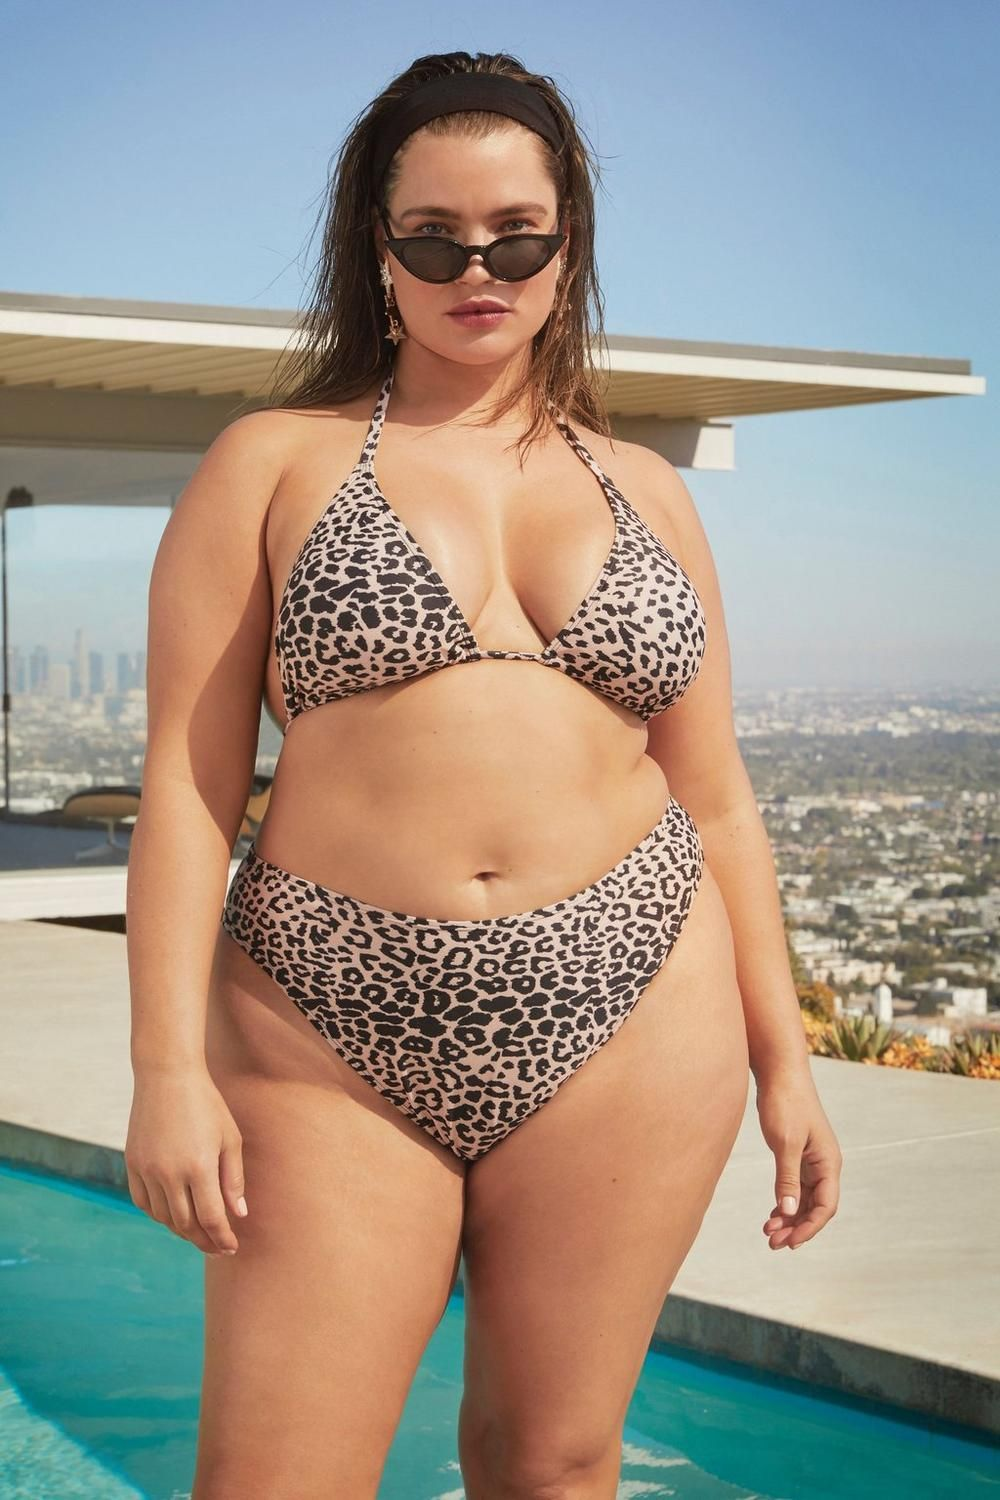 f57f5cb1f9 17 Cheap Swimsuits We Love in 2019 - Best Bathing Suits Under $100